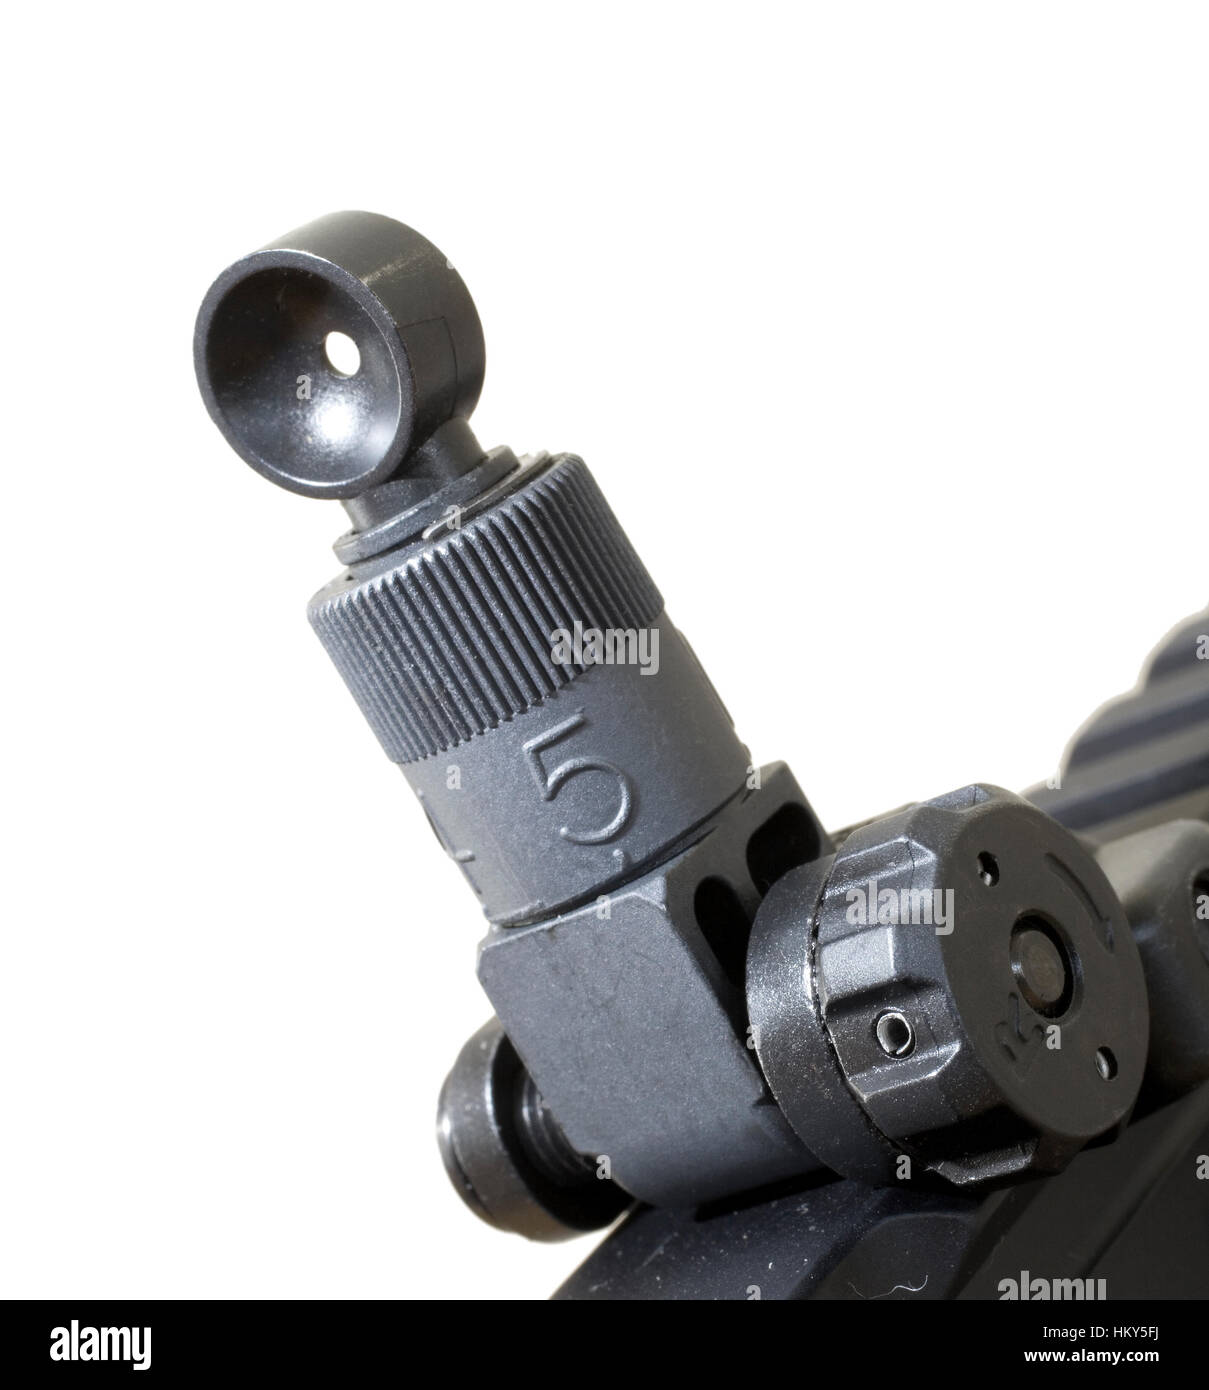 Sight on the back of an AR 15 that is adjustable for windage - Stock Image